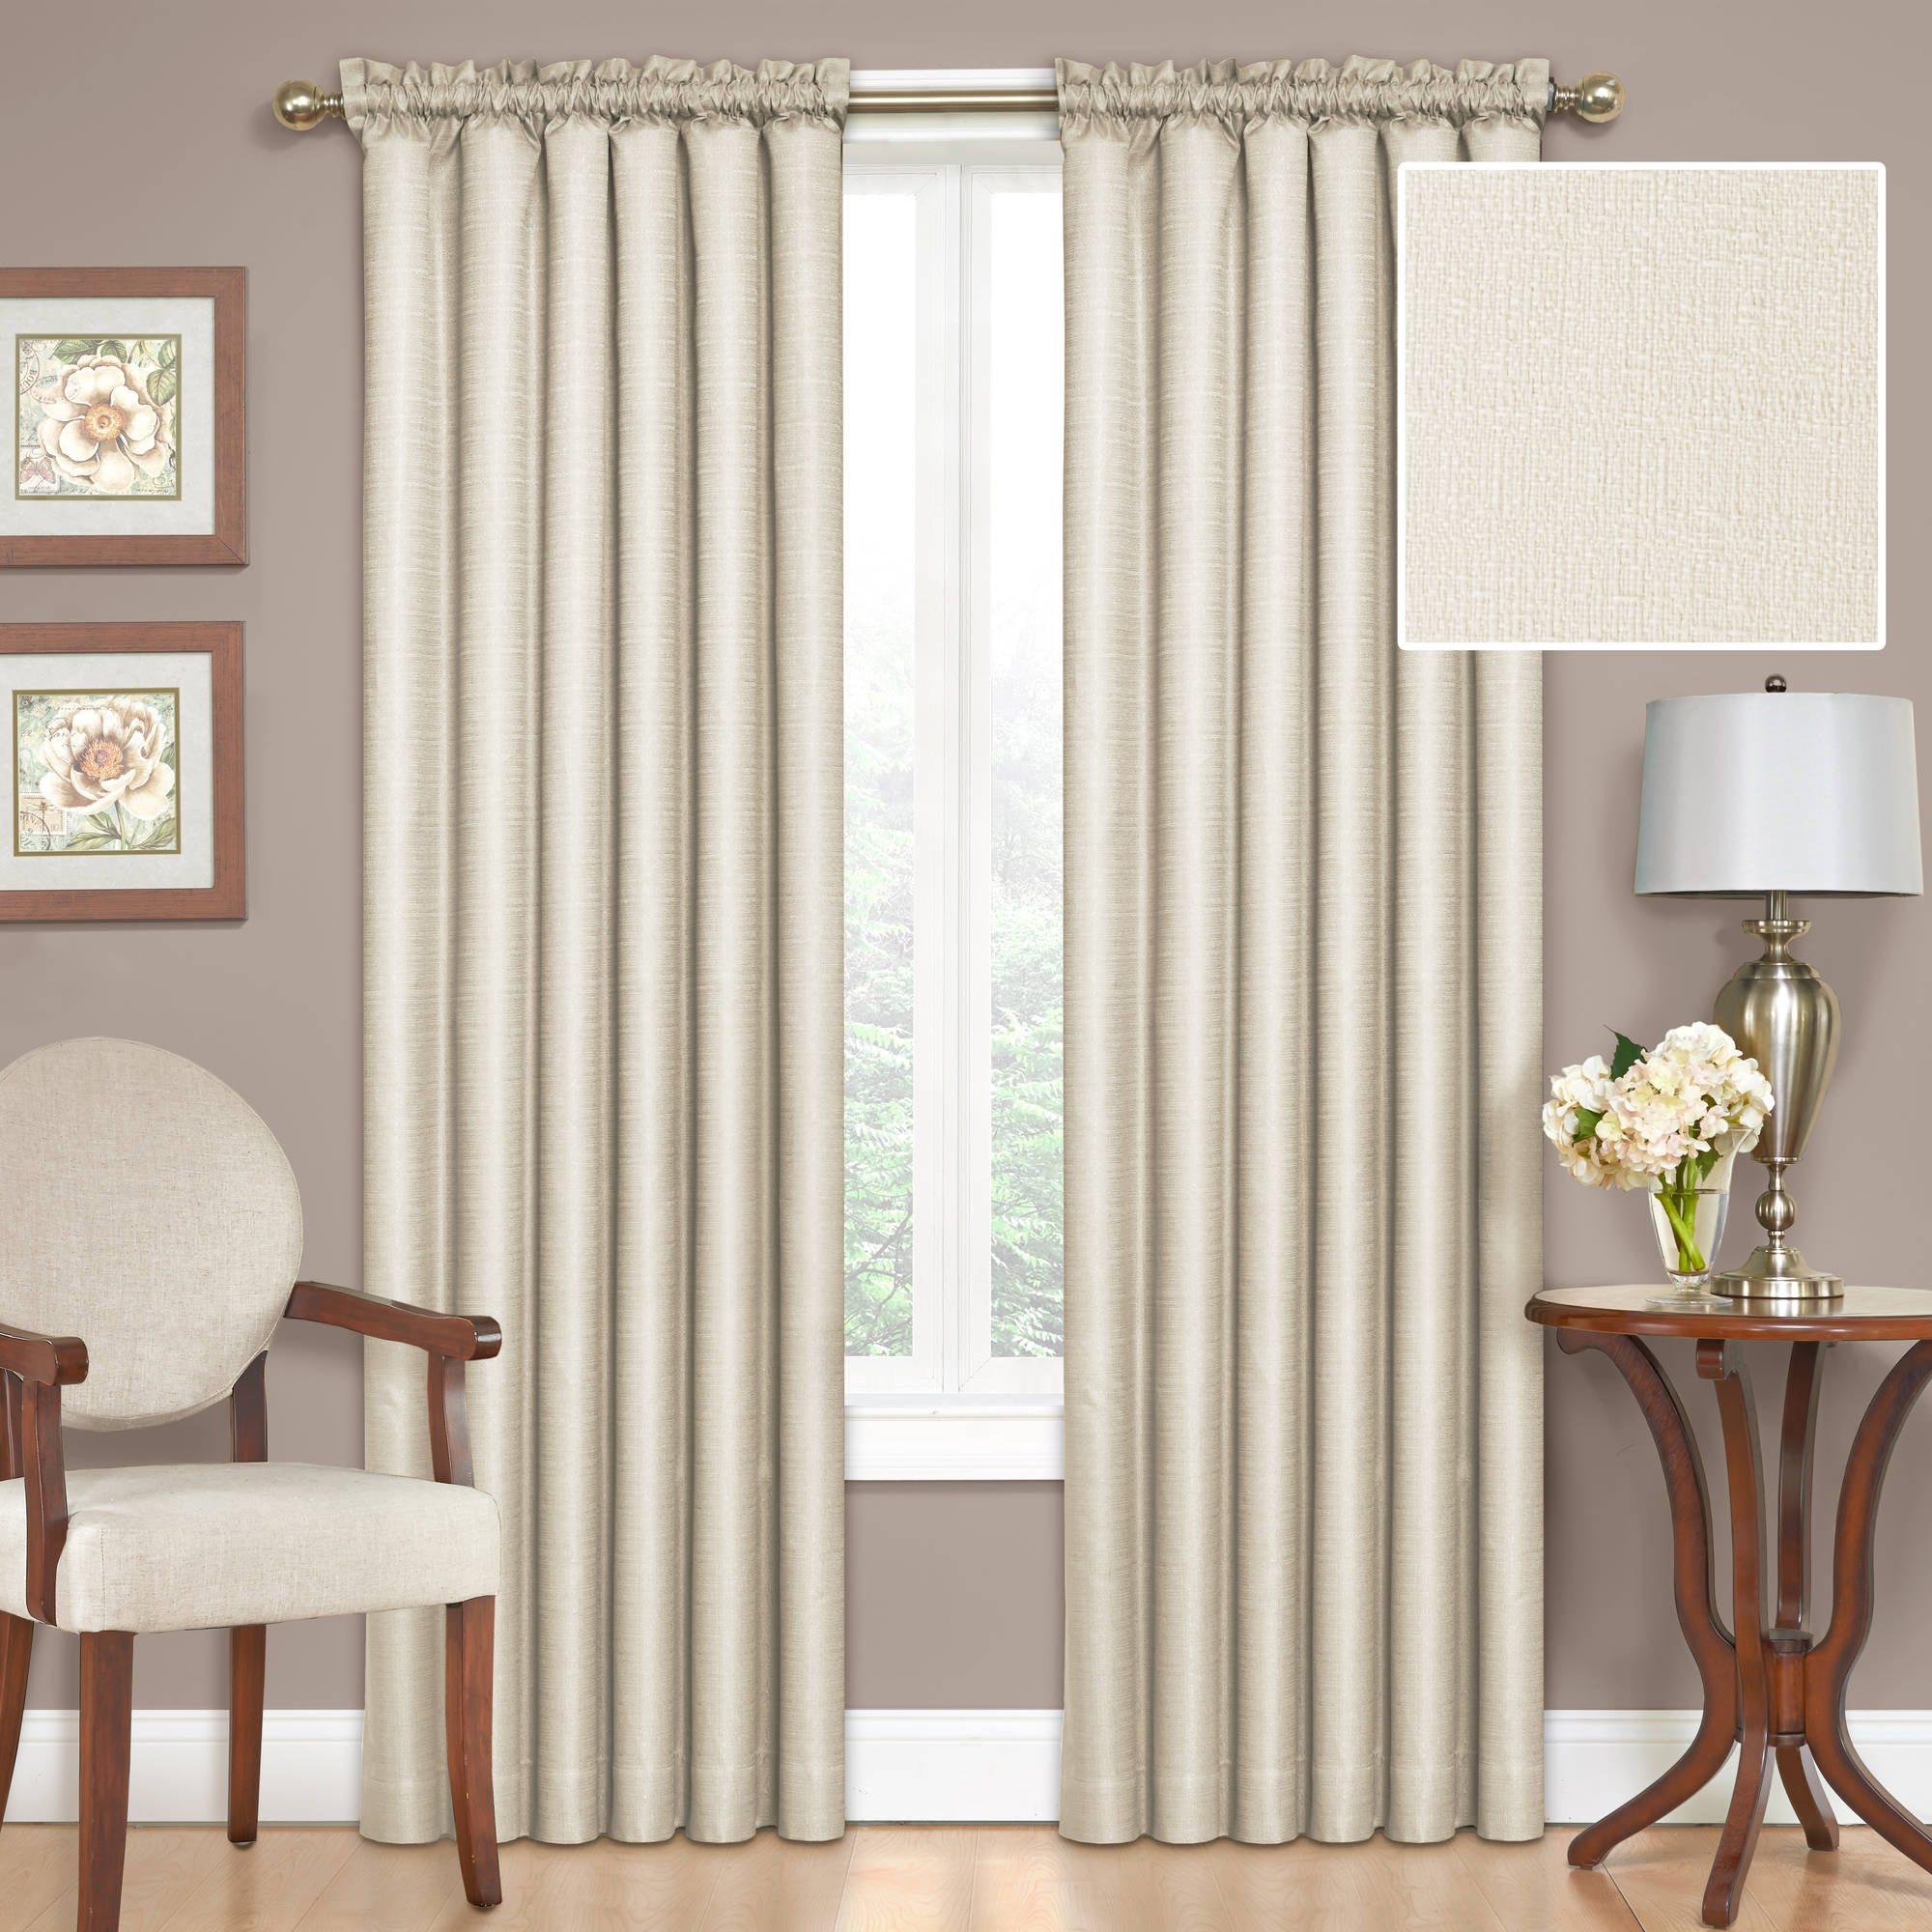 Blackout Curtains To Help You Sleep